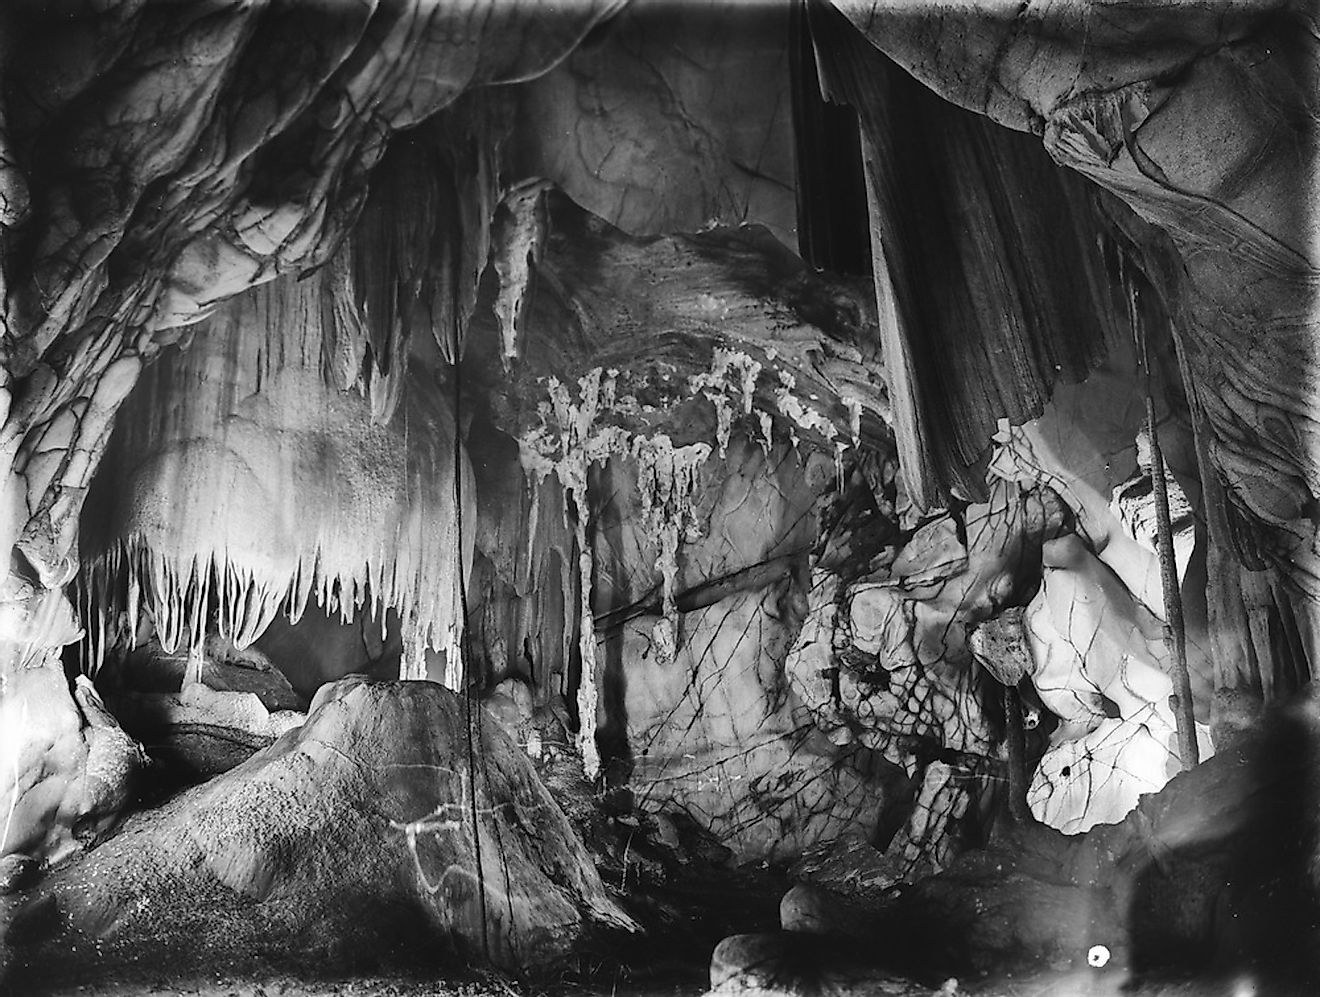 Interior of a limestone cave at the Chillagoe-Mungana Caves National Park, Queensland. Image credit: State Library of Queensland/Shutterstock.com